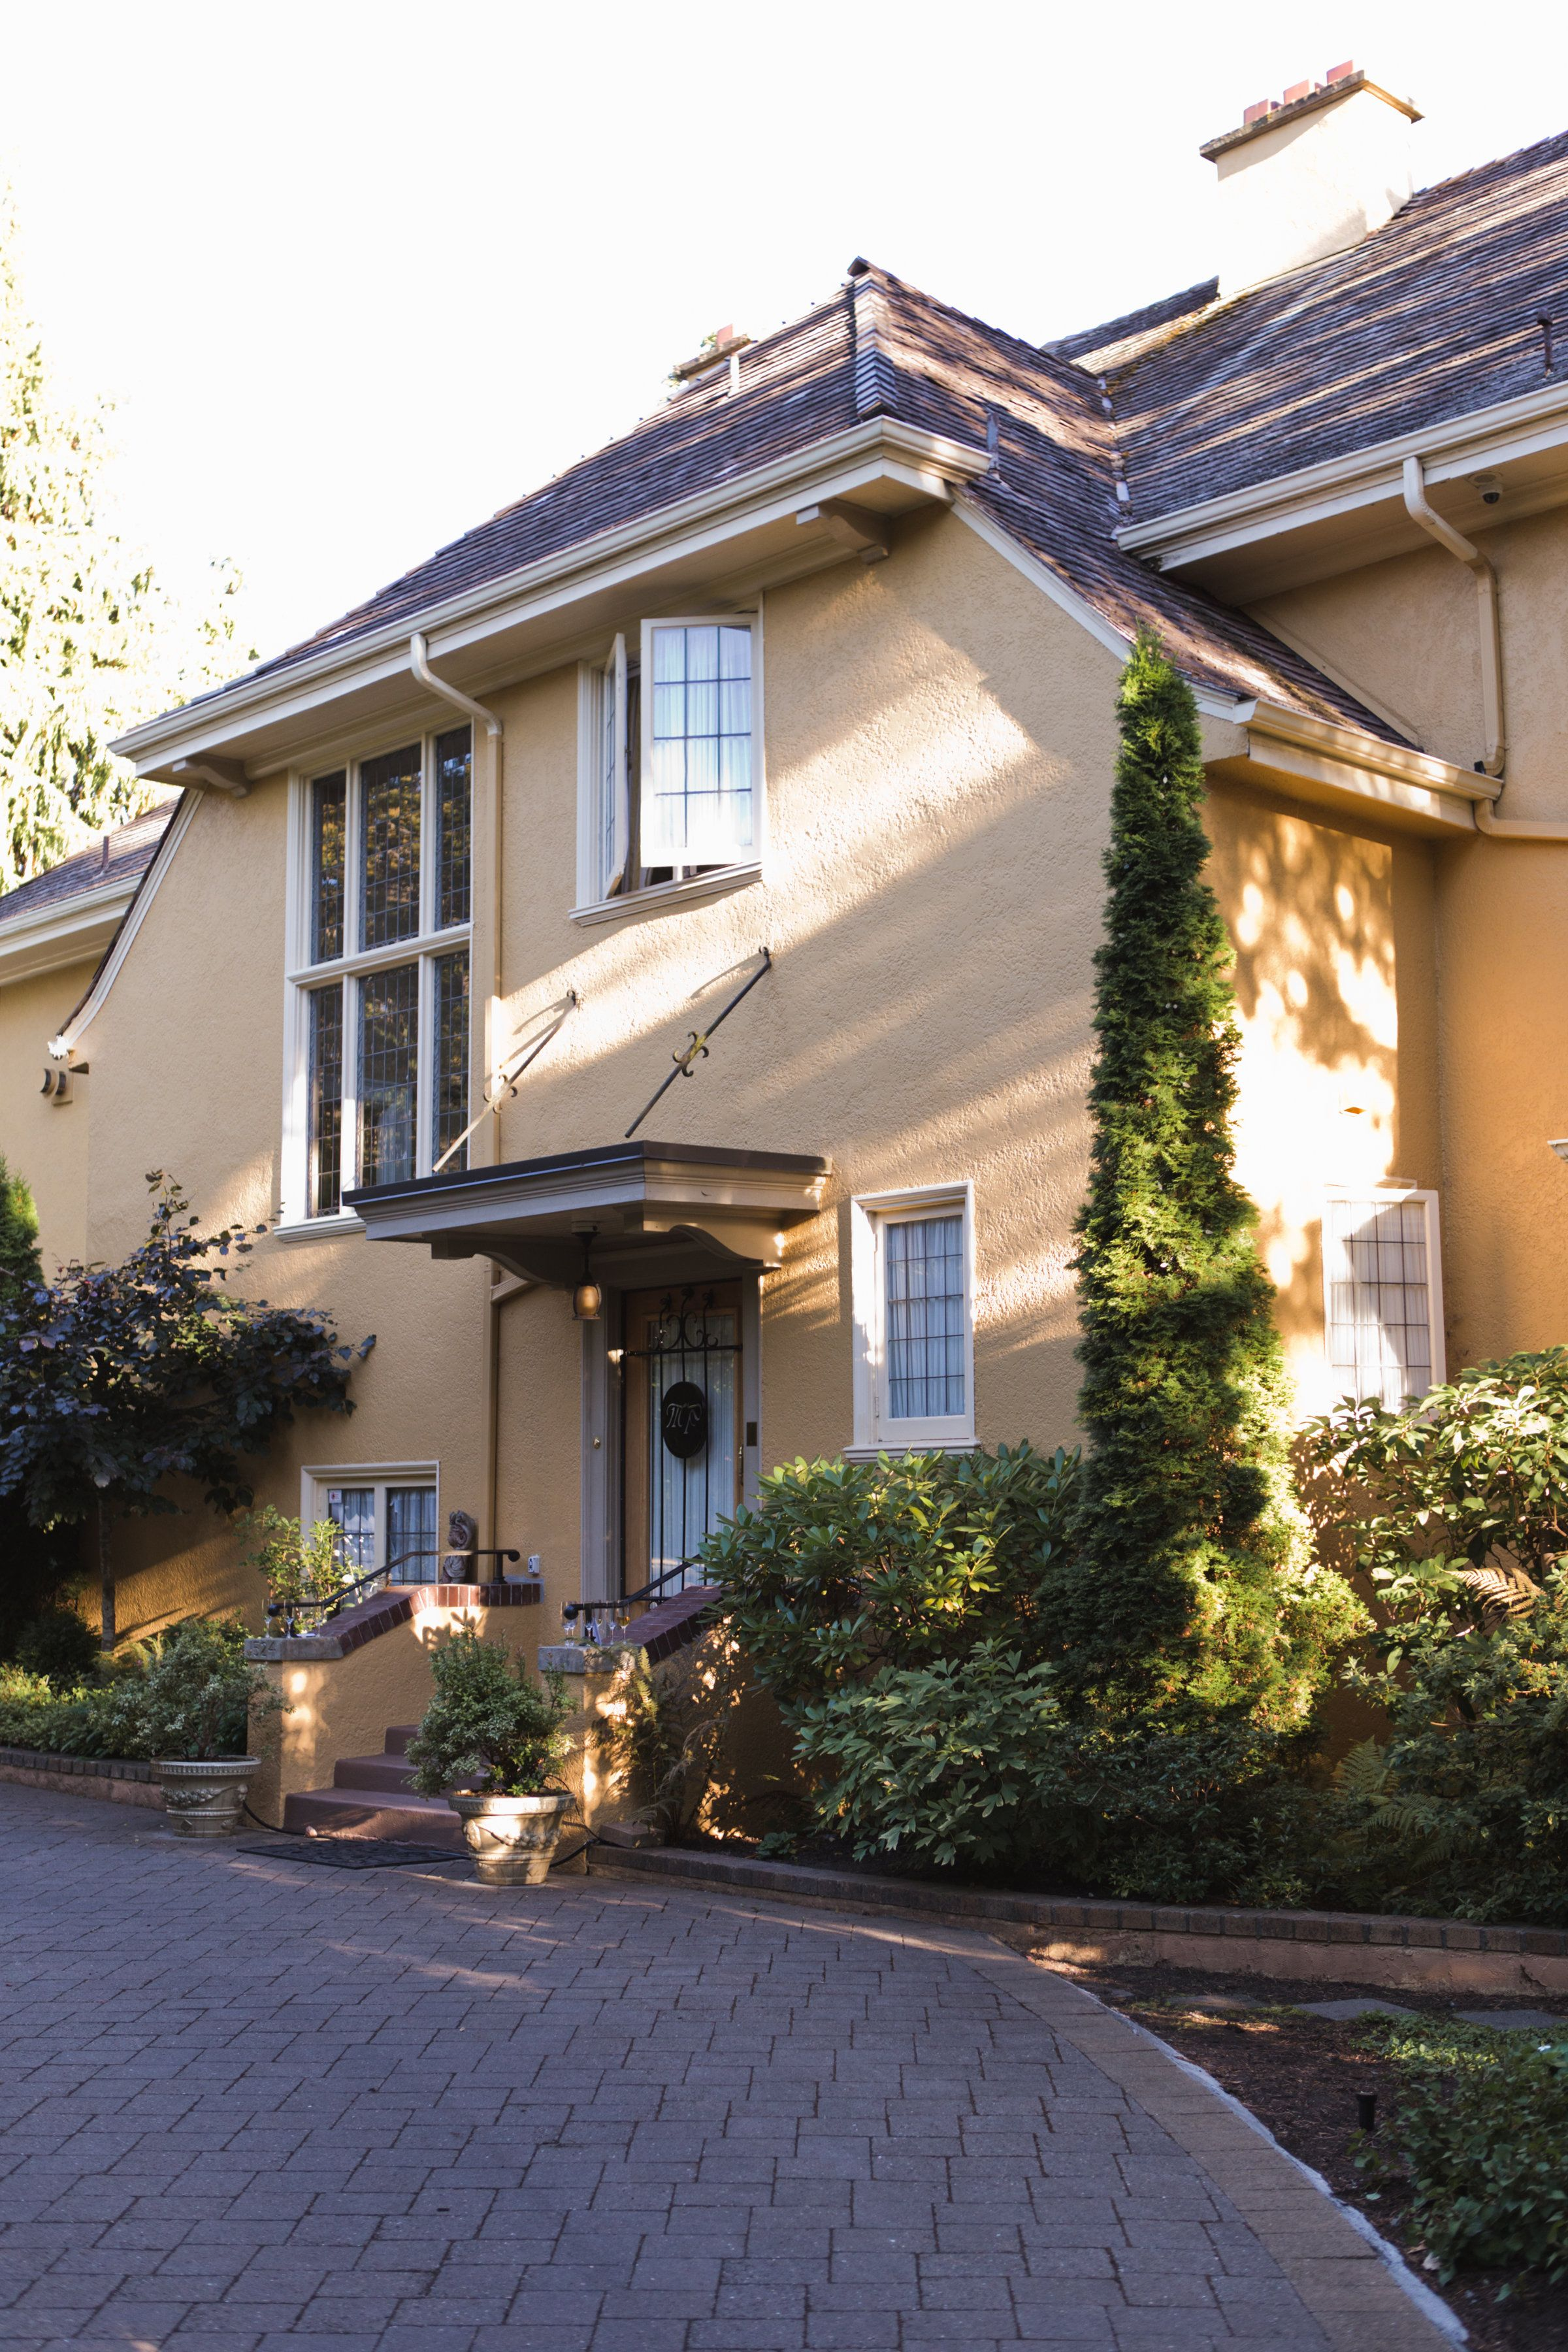 Victoria BC bed and breakfast. Picture taken August 2016